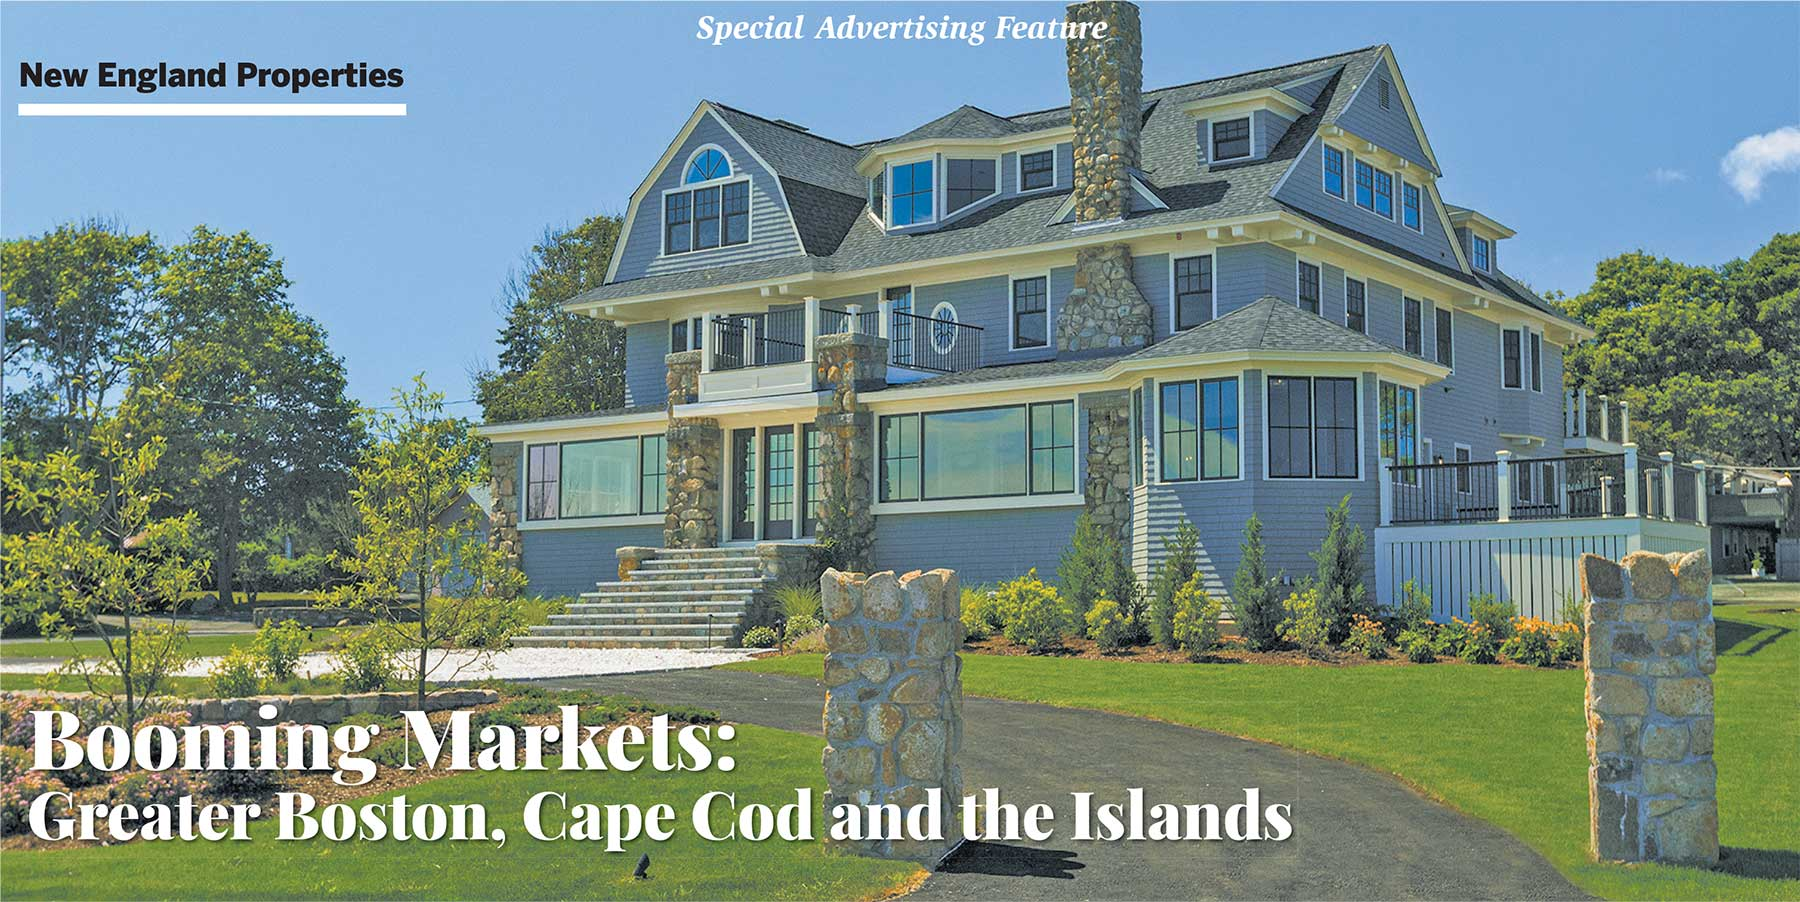 Aquarius Featured in New England Real Estate Journal